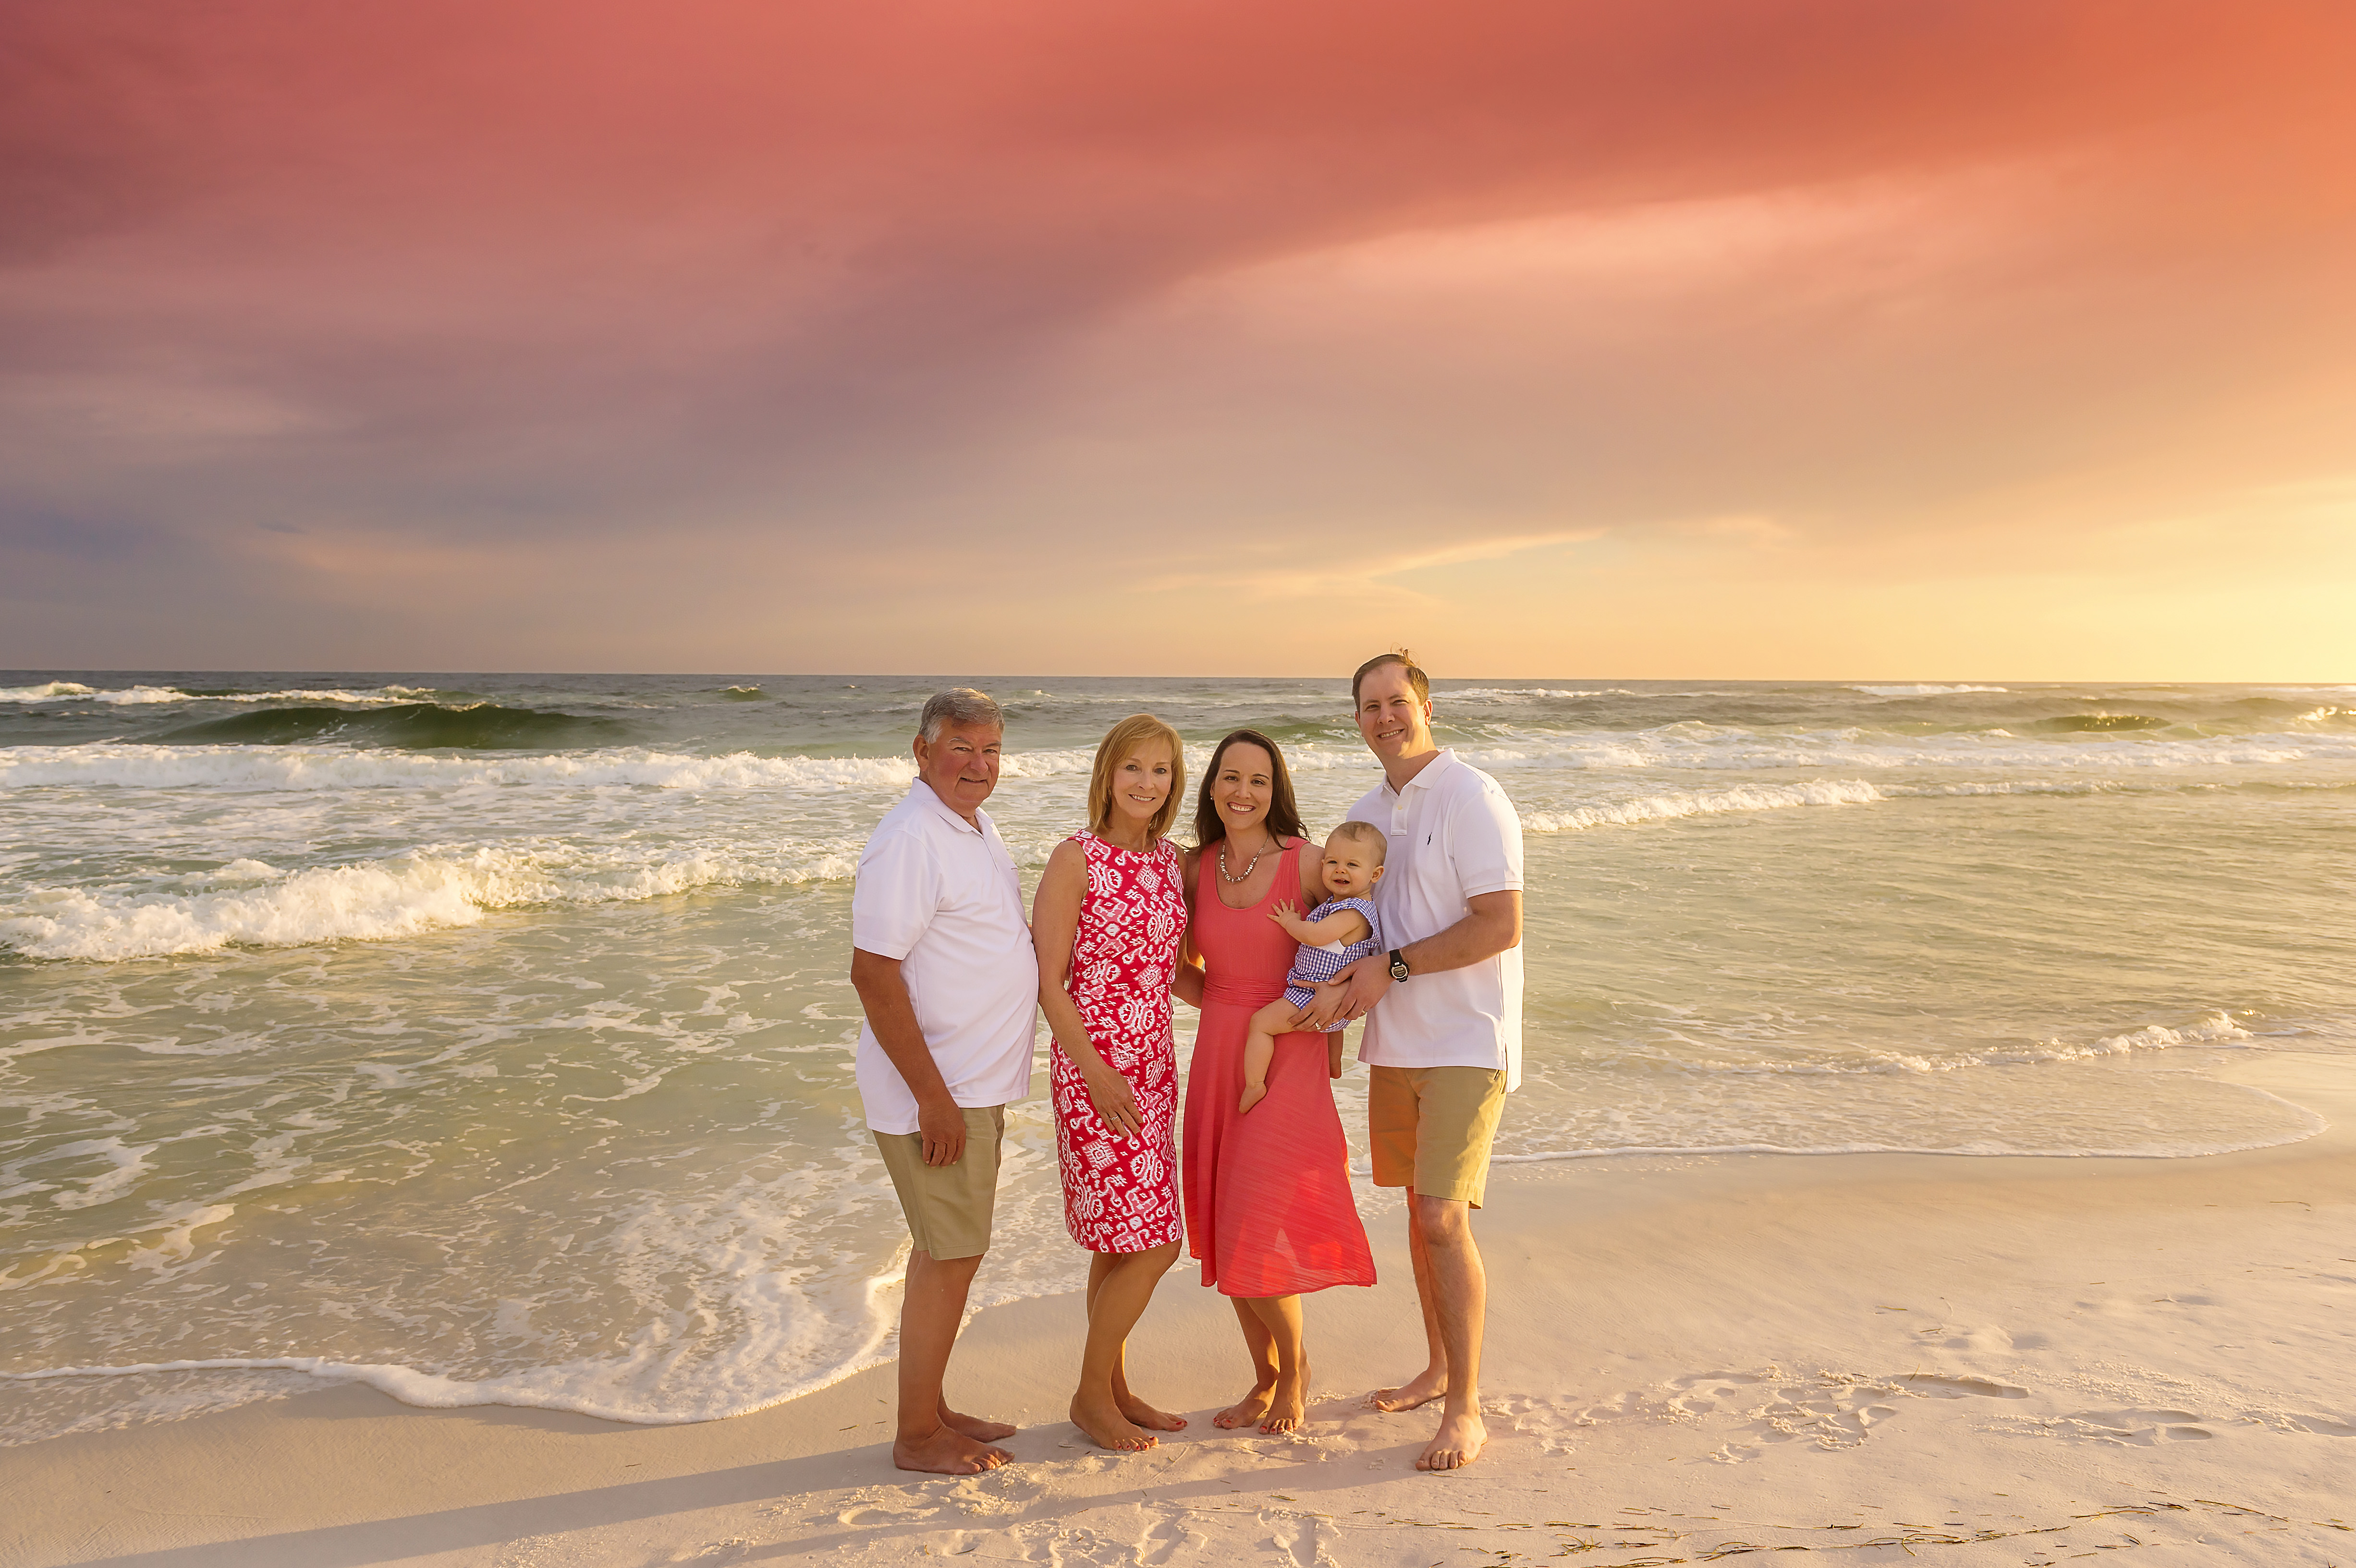 Destin_Florida_Beach_Photographer_0102